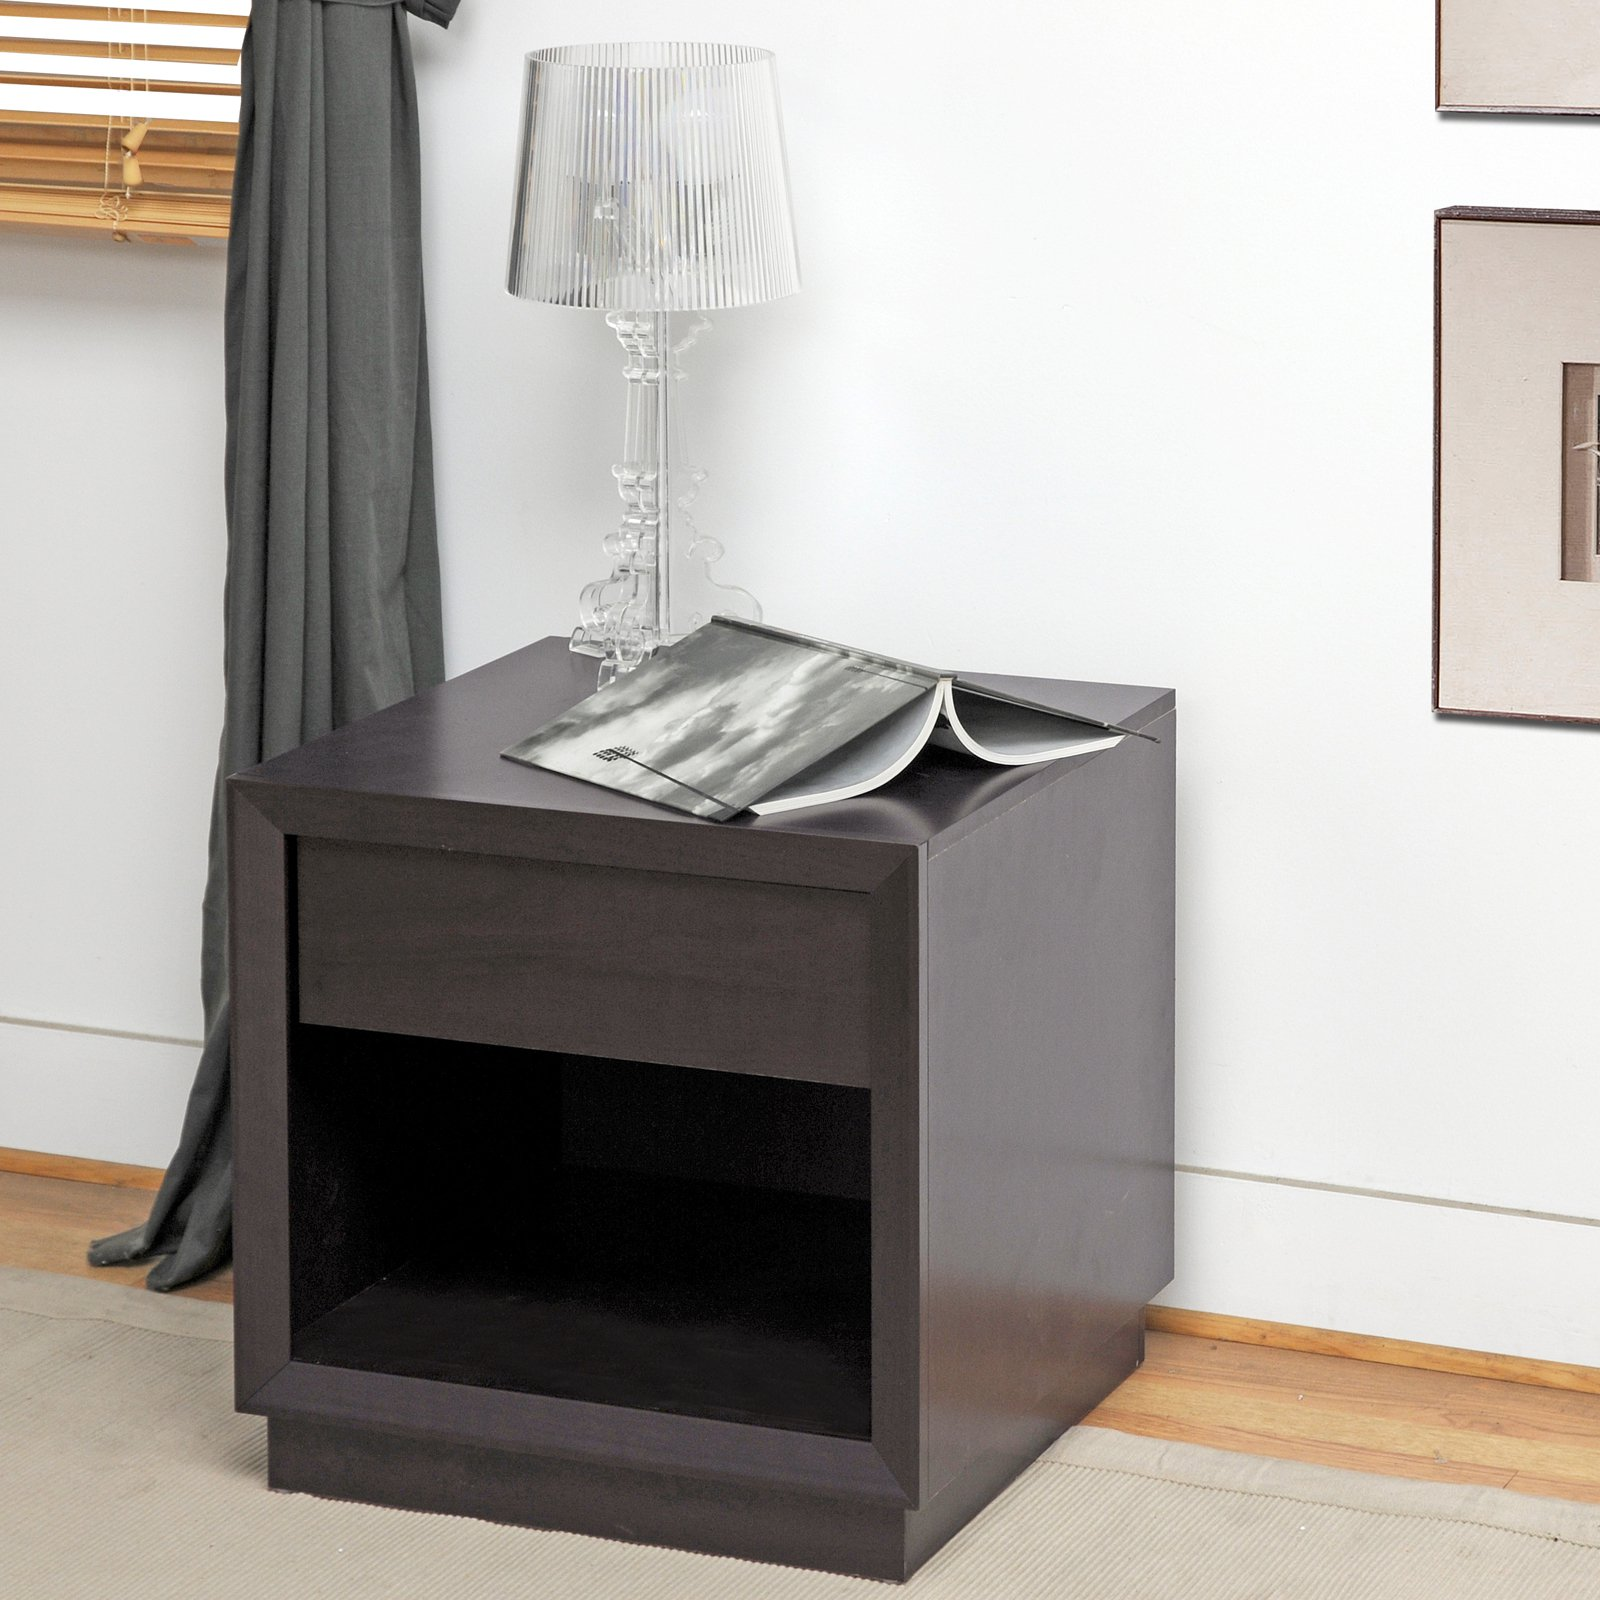 Girvin Brown Modern Accent Table and Nightstand by Baxton Studio